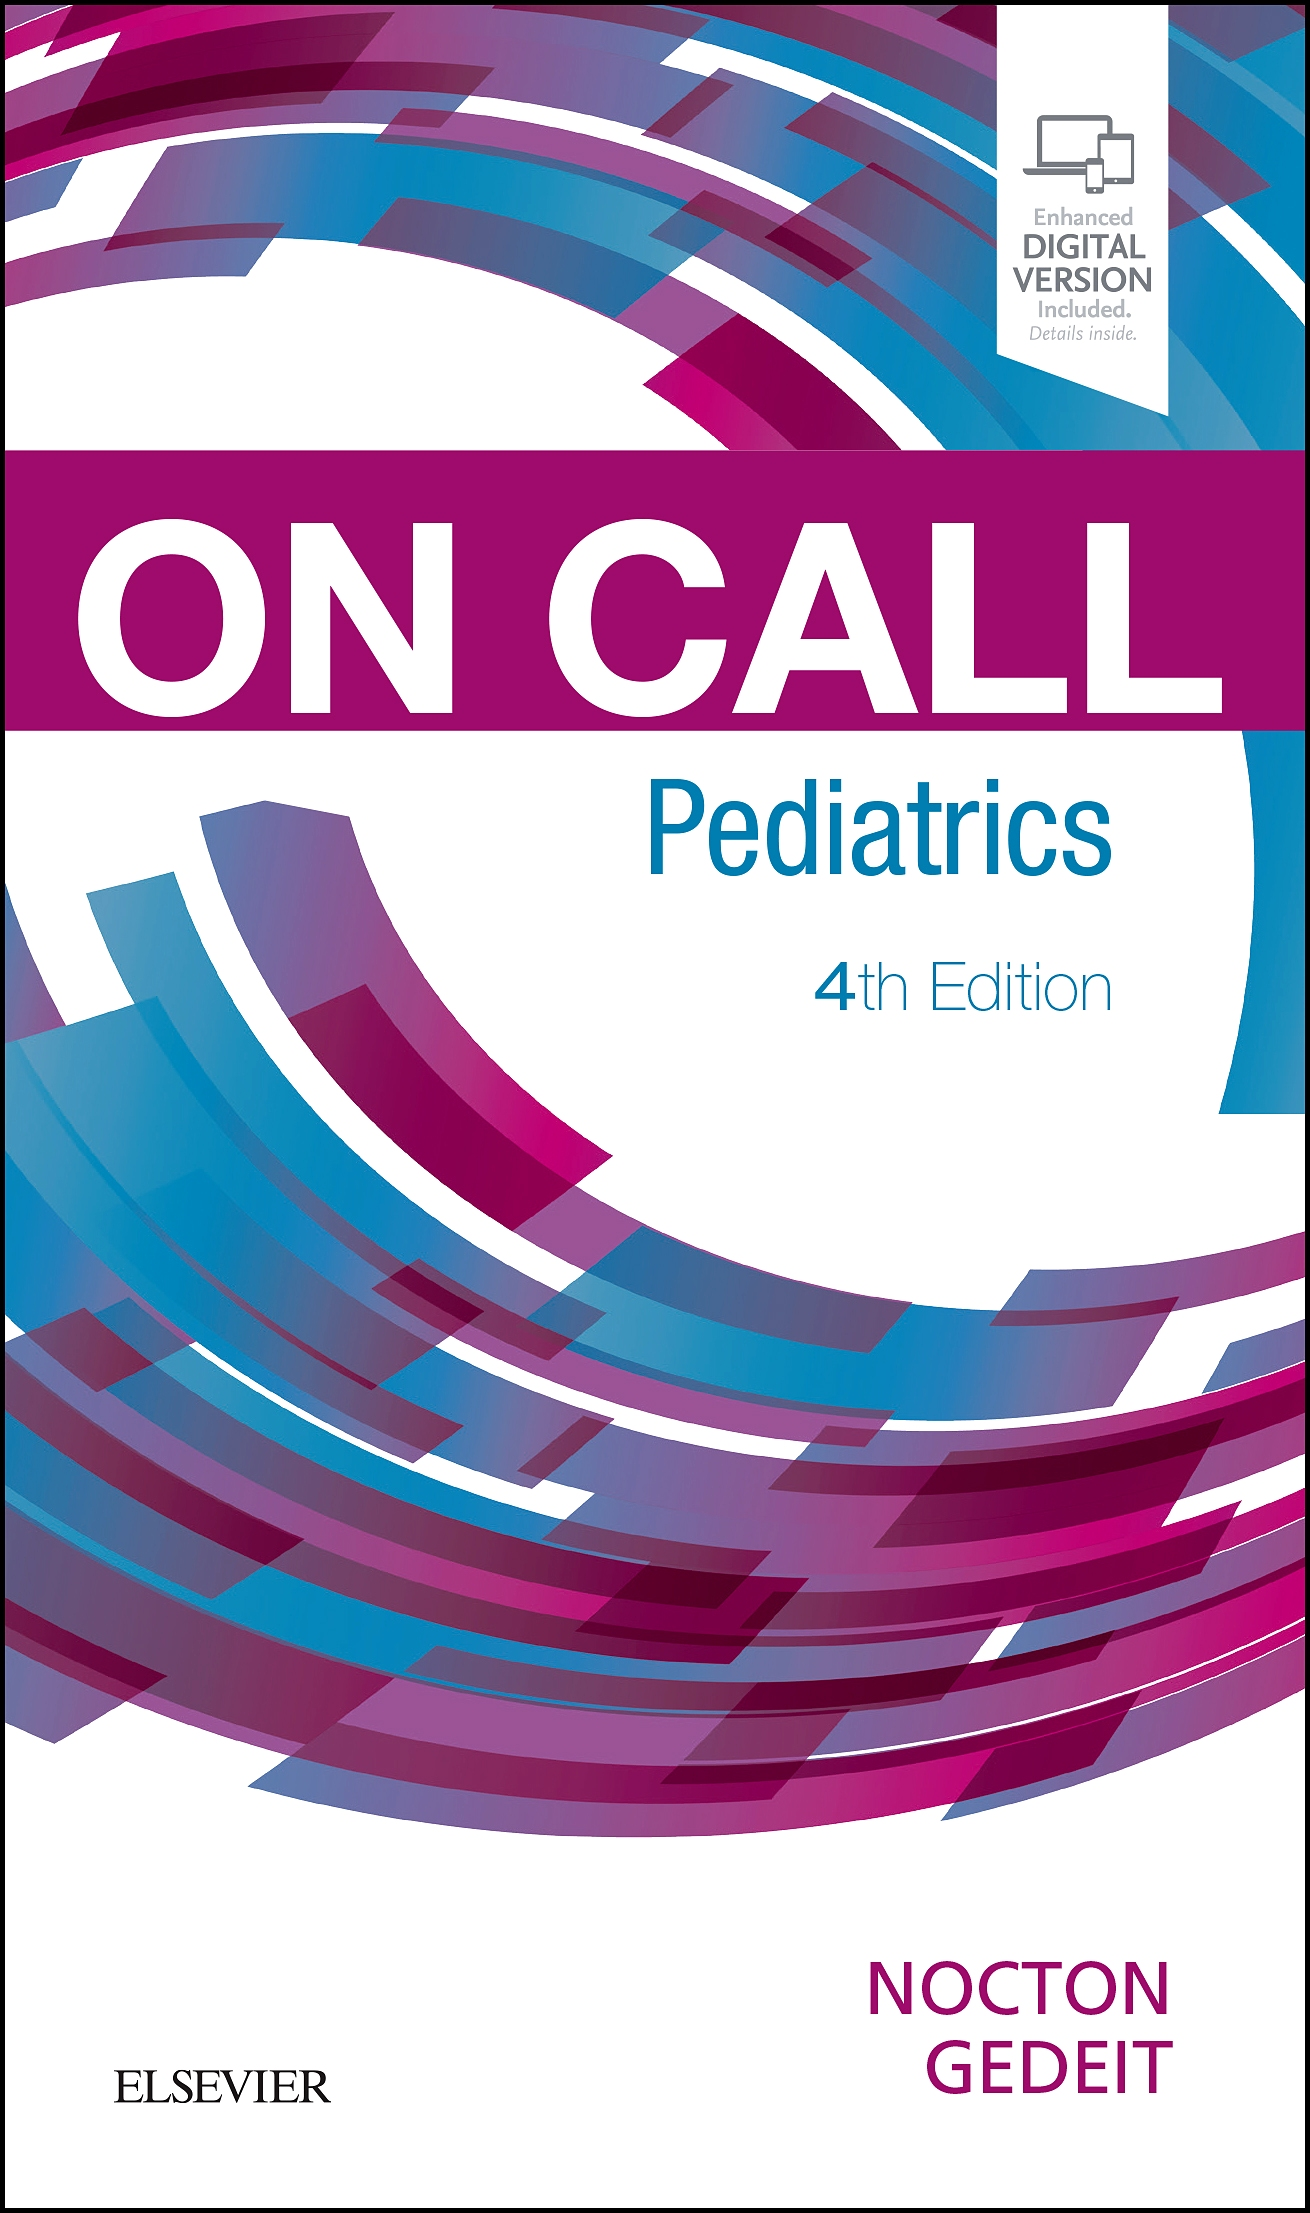 On Call Pediatrics